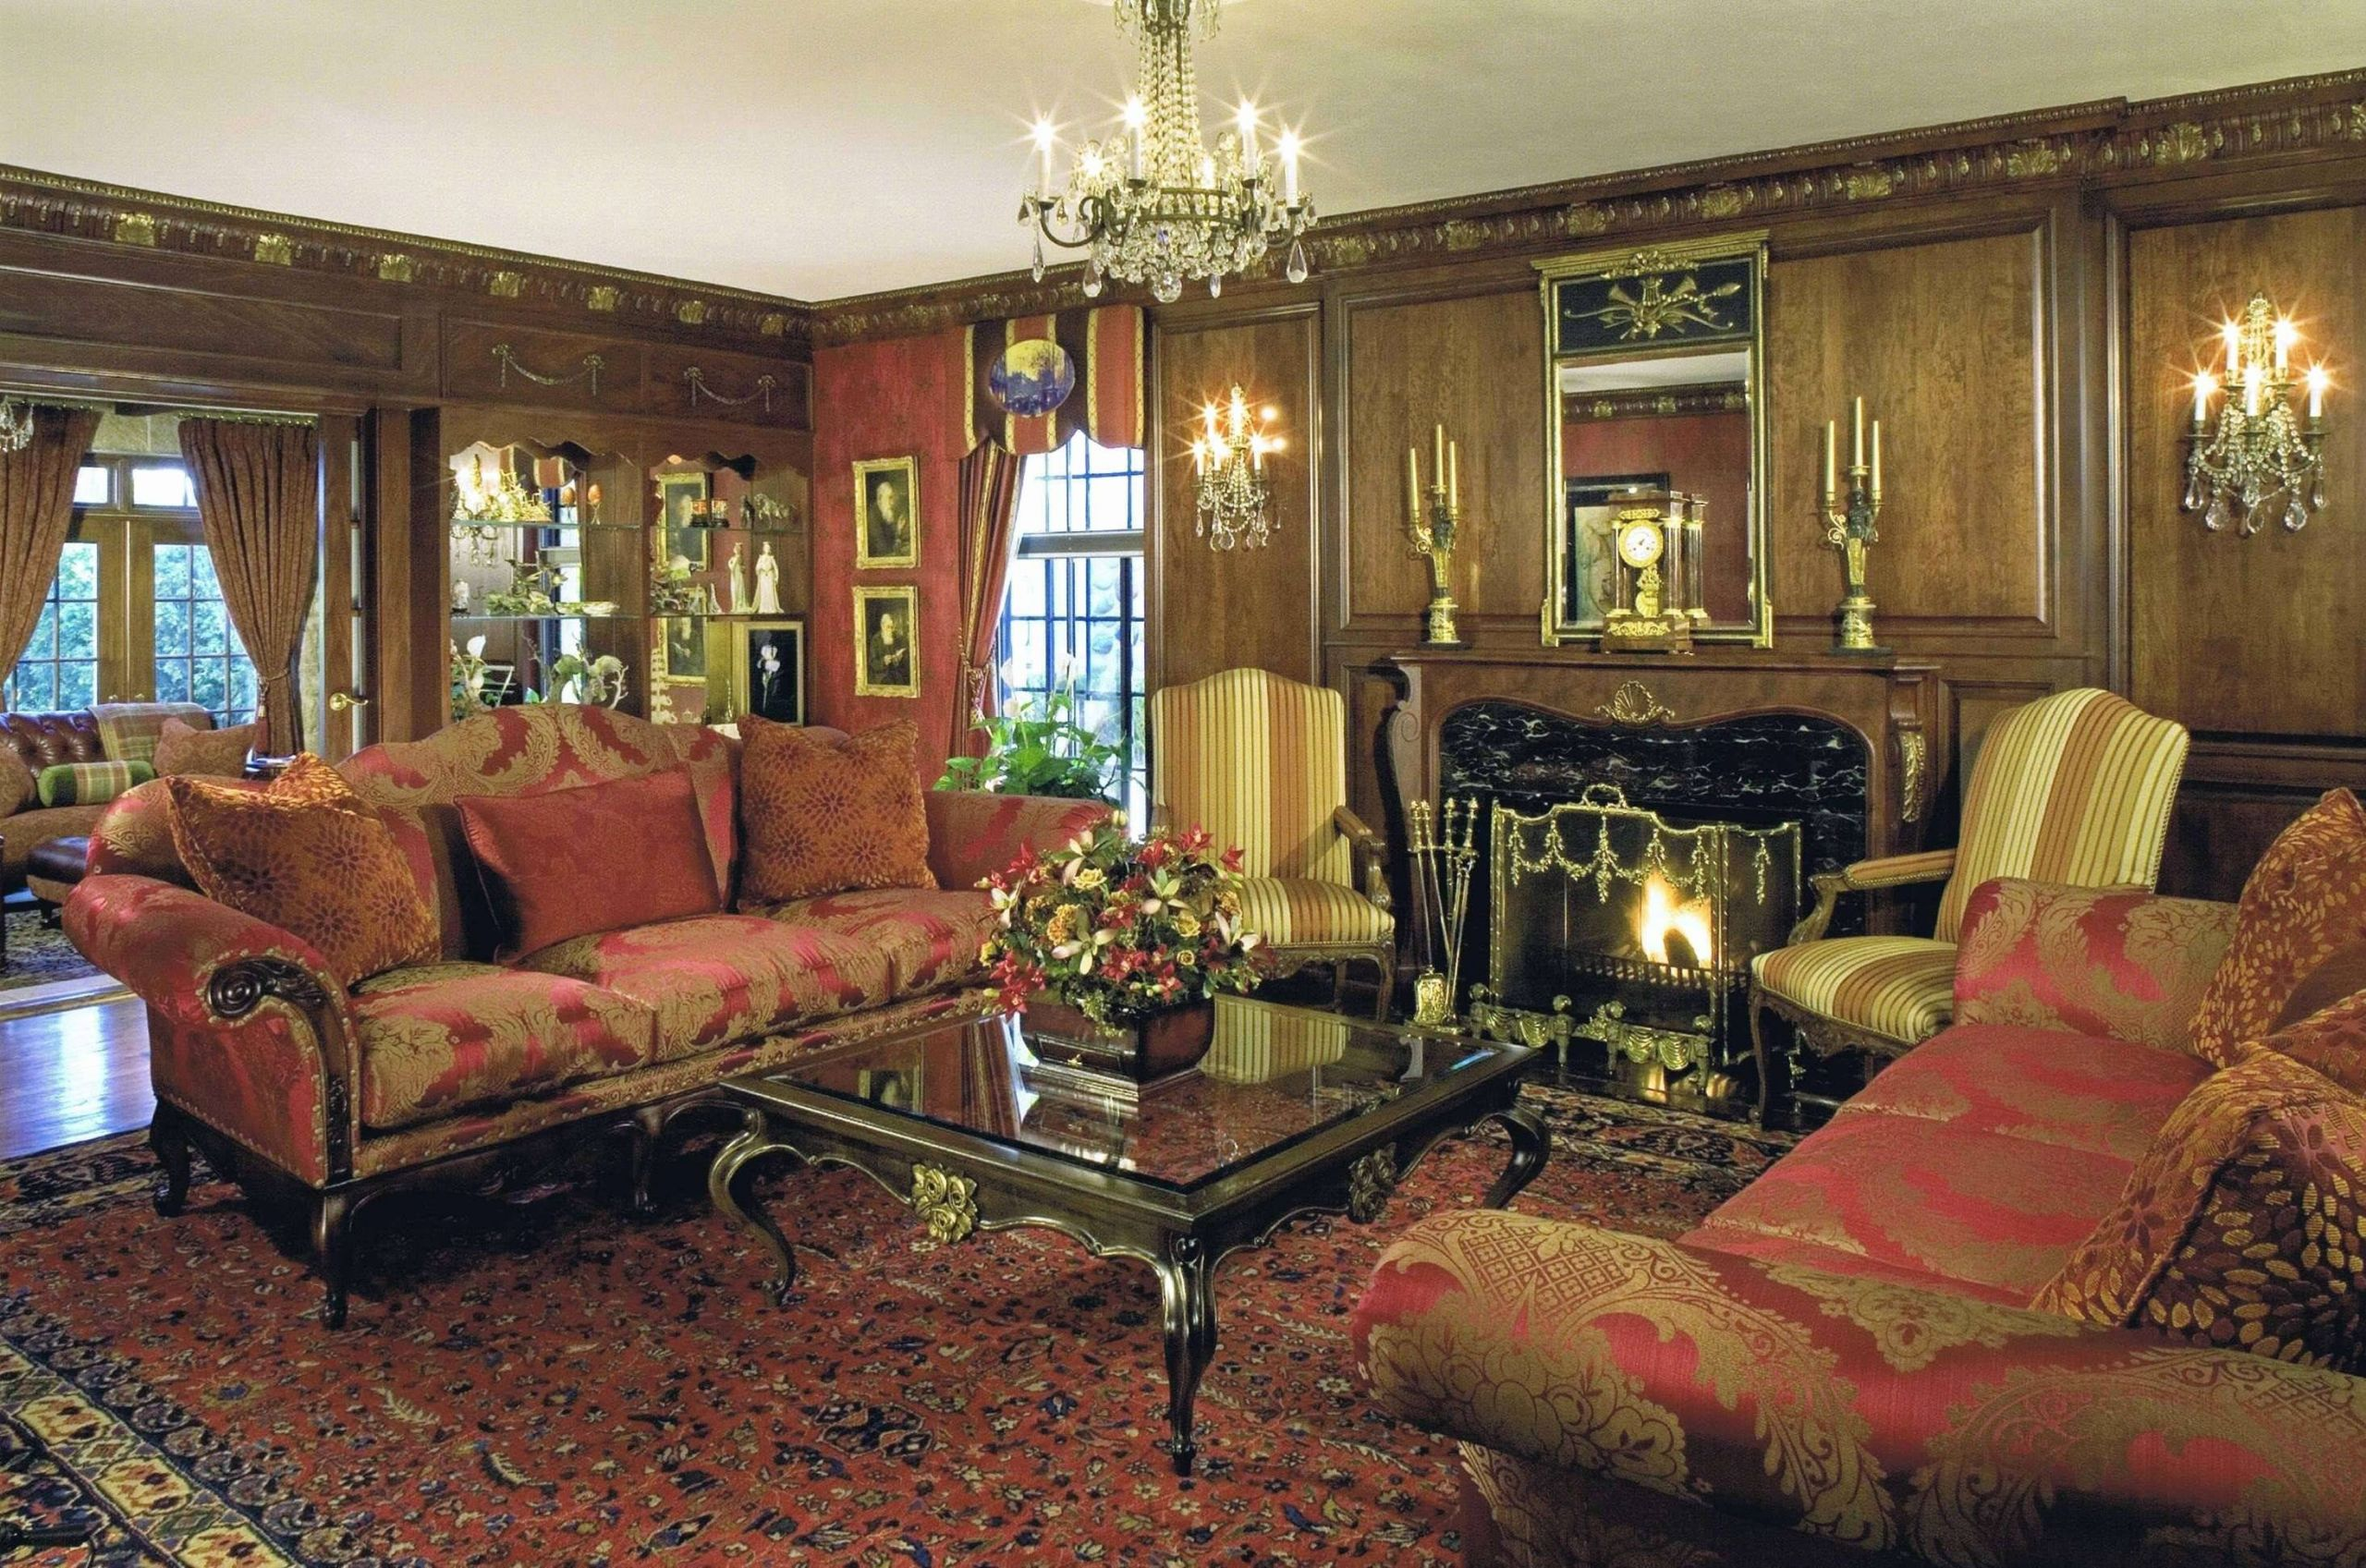 traditional home interior pictures interior decorating ideas for bedrooms stunning living room traditional decorating ideas awesome shaker chairs 0d